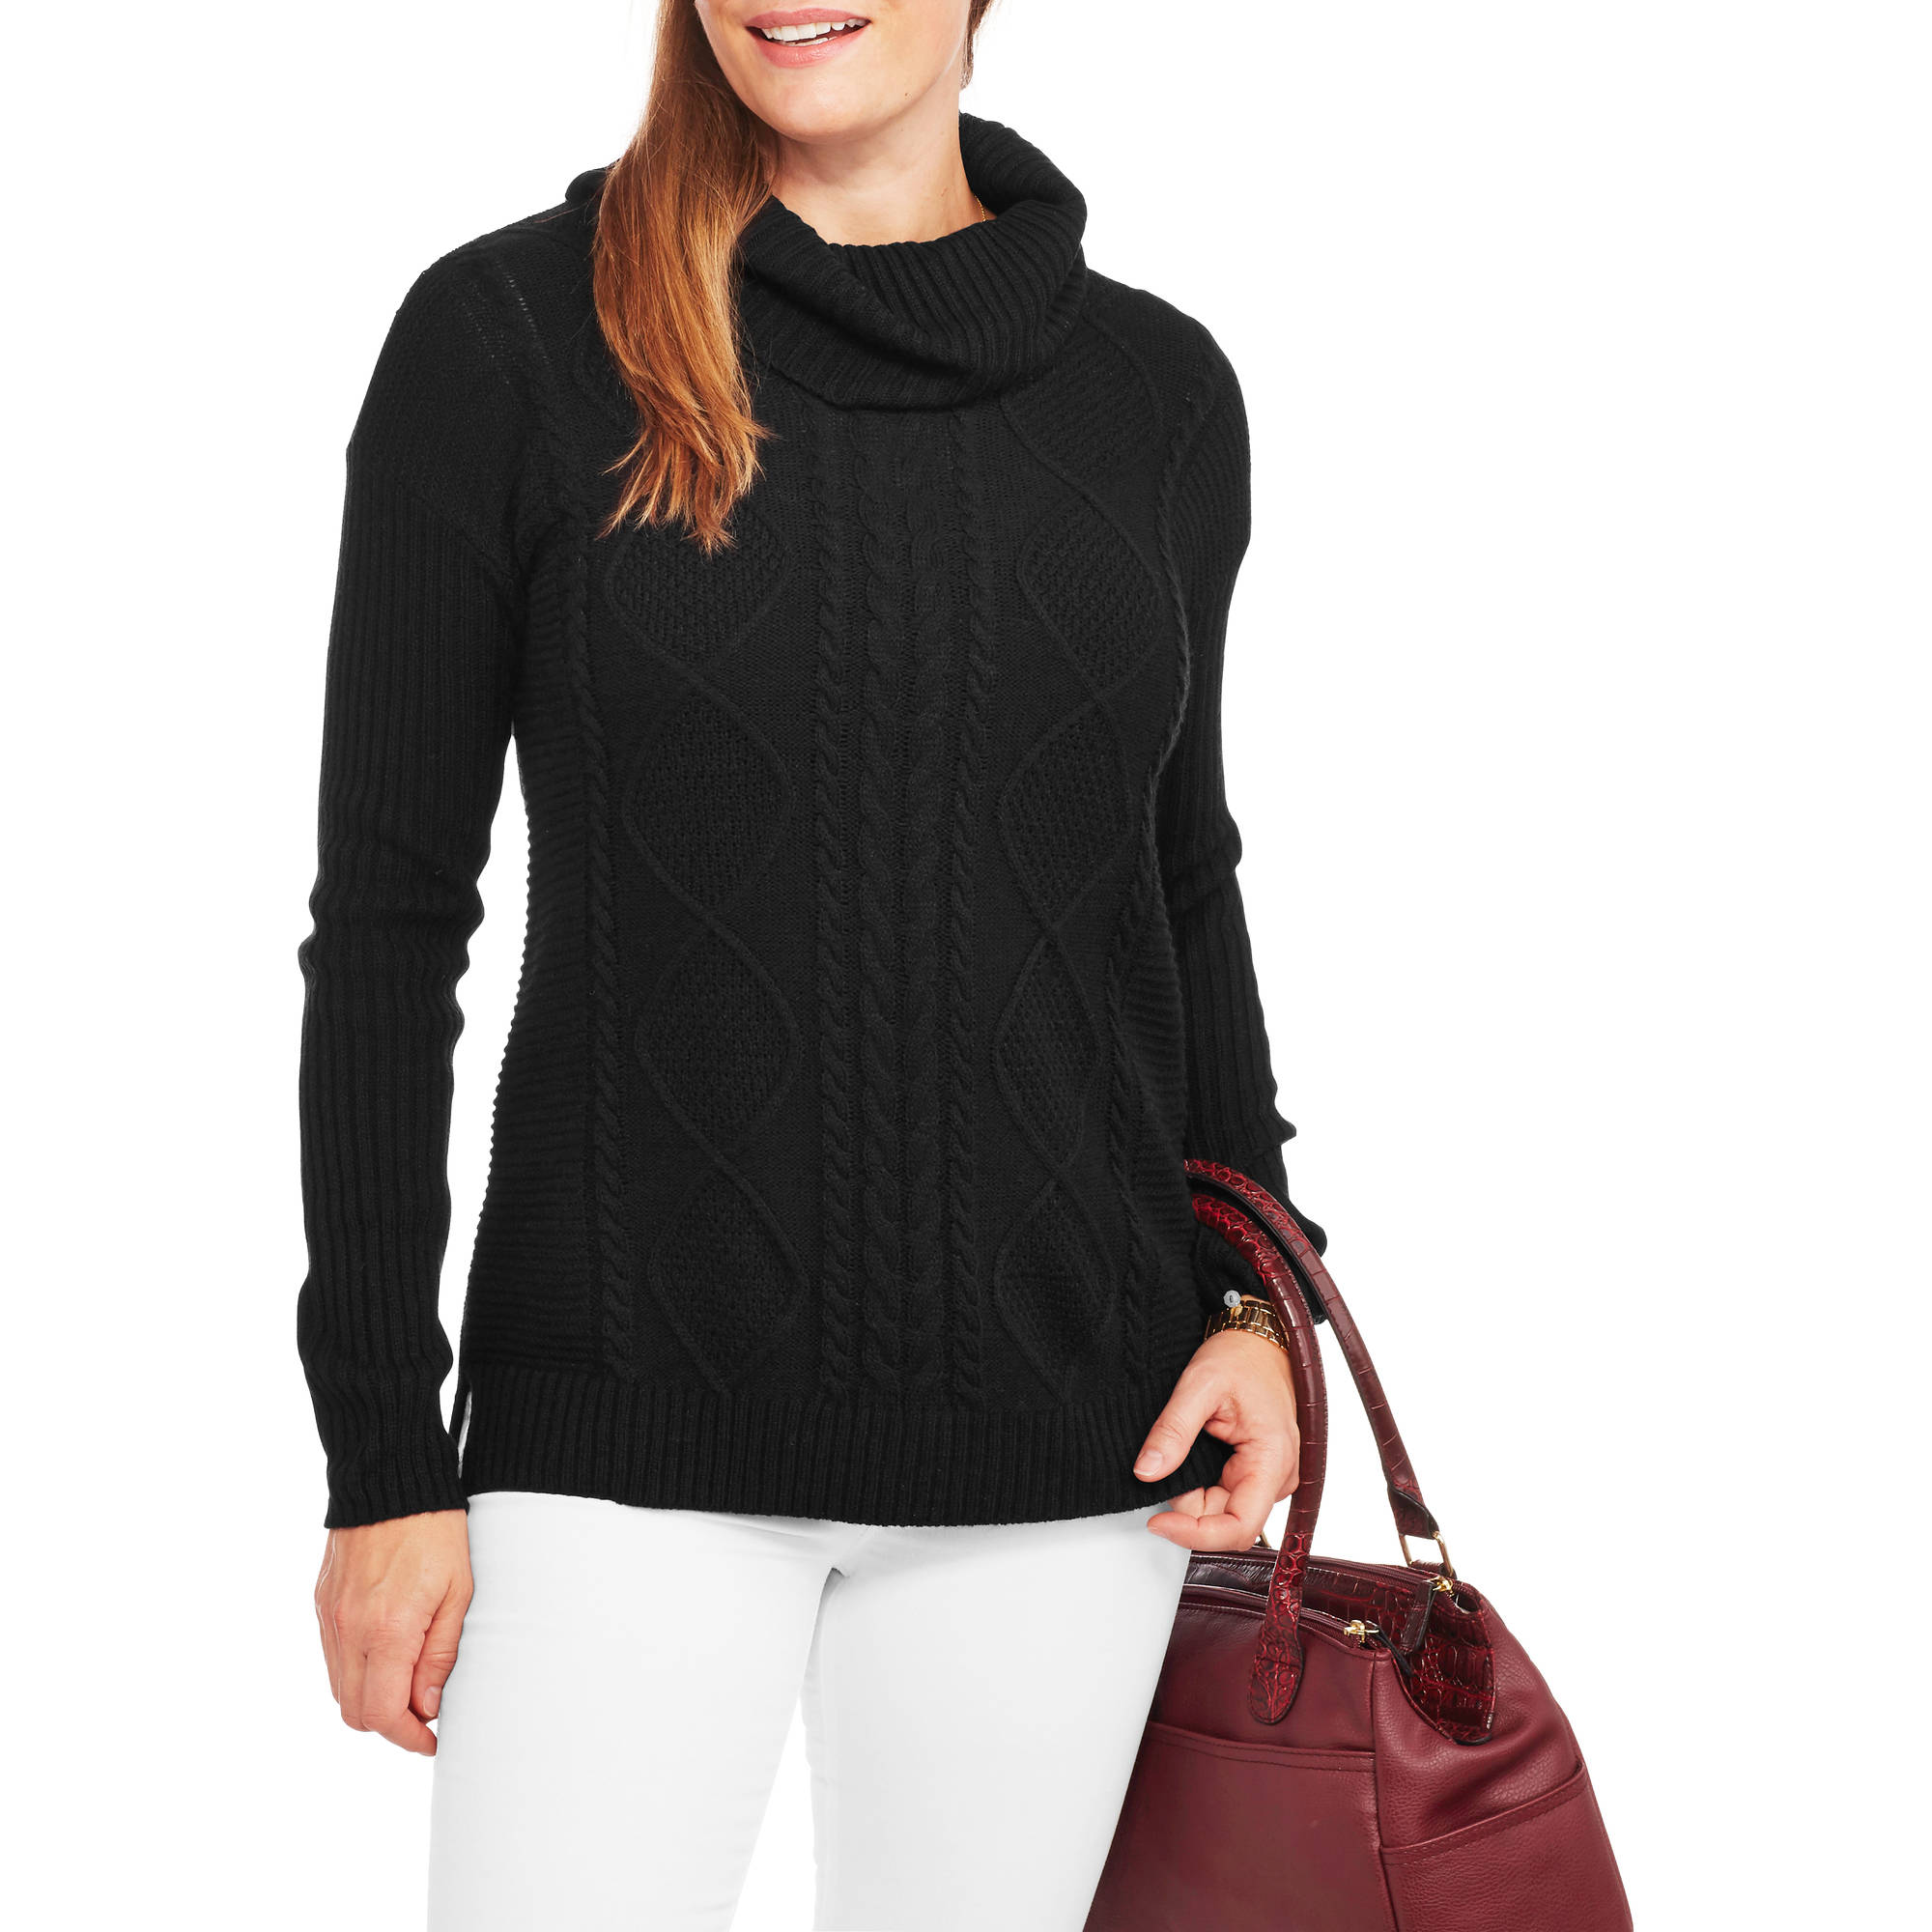 Faded Glory Women's Cowl Neck Pullover Sweater